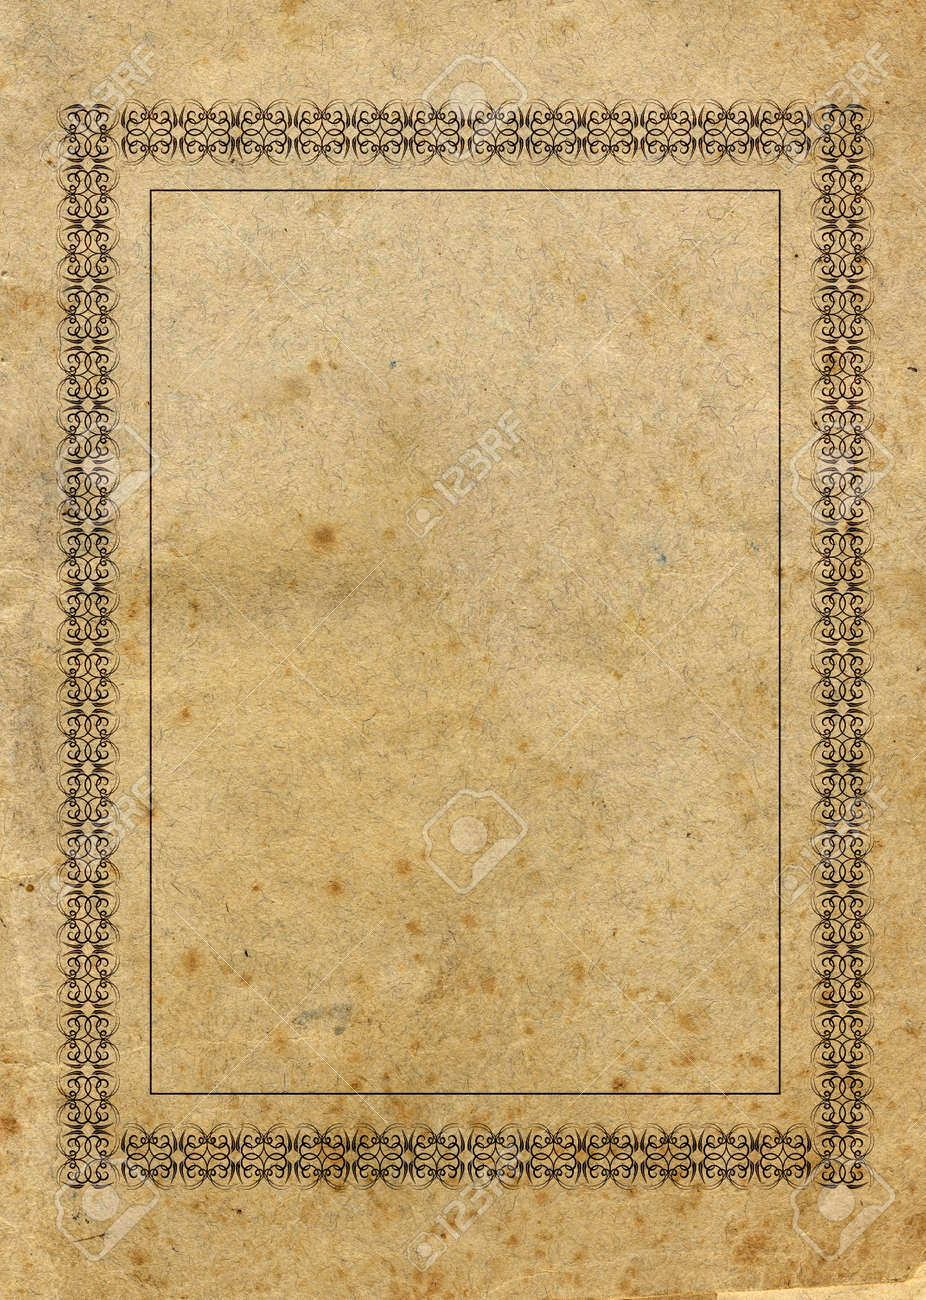 highly detailed textured vintage paper with victorian style border